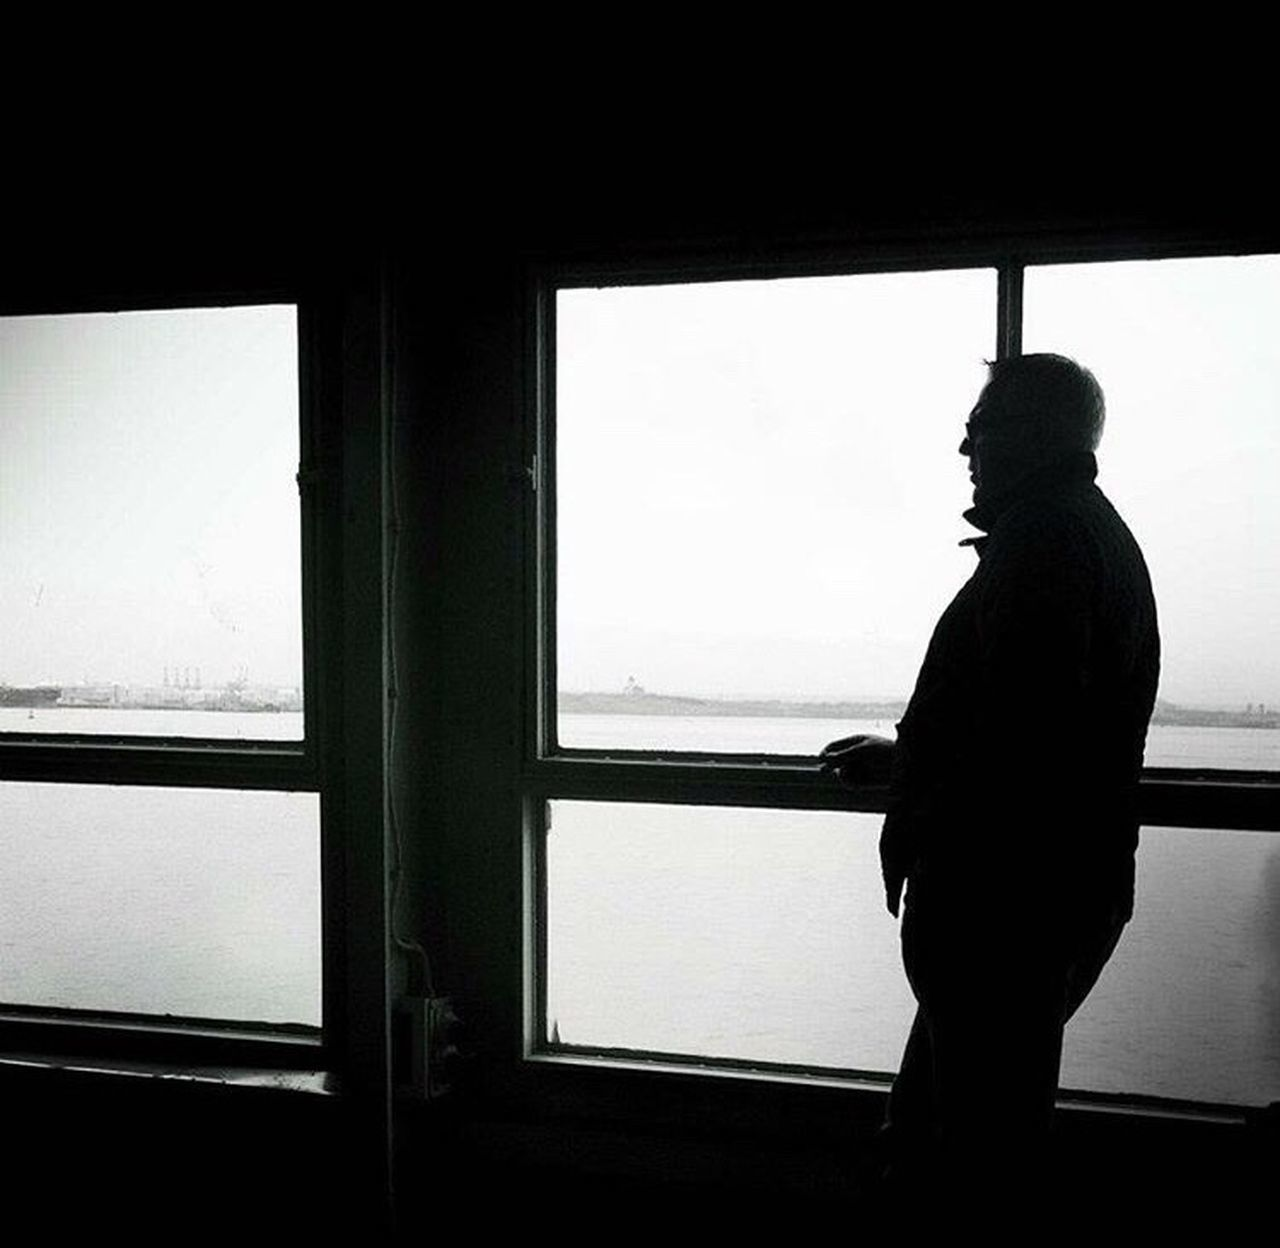 Reflecting in the shadows Subjectlight Shadow Window Contemplation Commute Staten Island Ferry Commuter